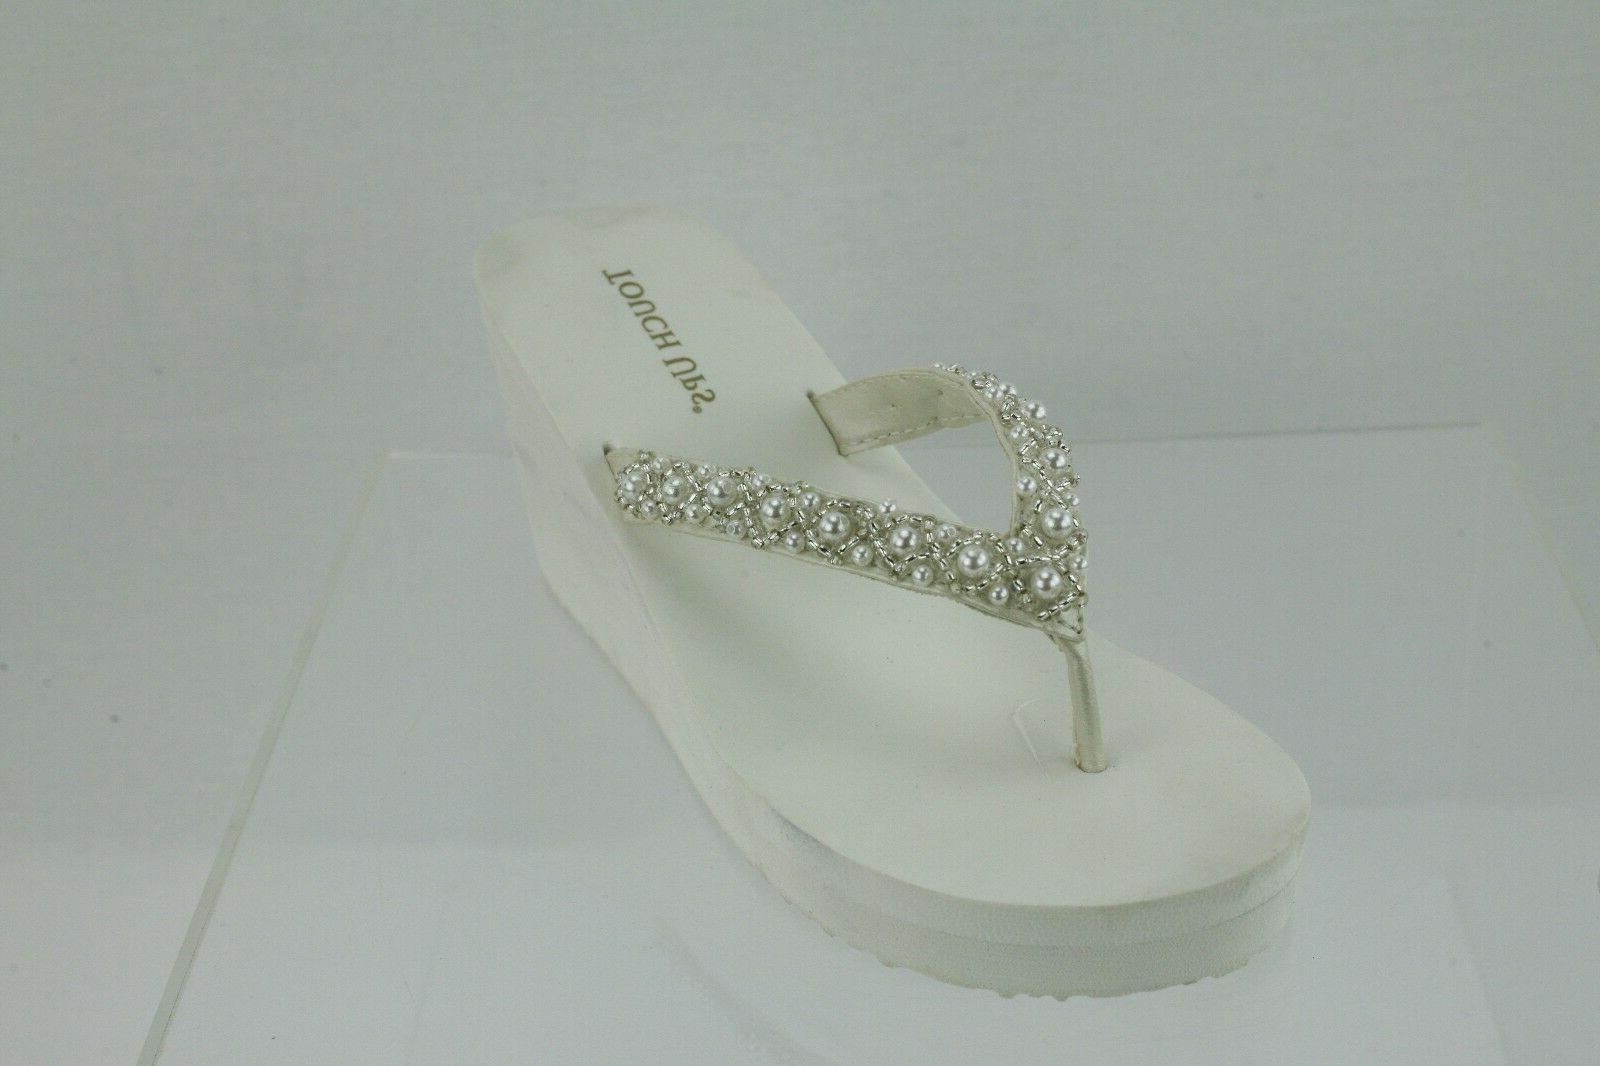 Touch Ups Shelly Wedge Thong Sandals Cushioned Pearls Beads